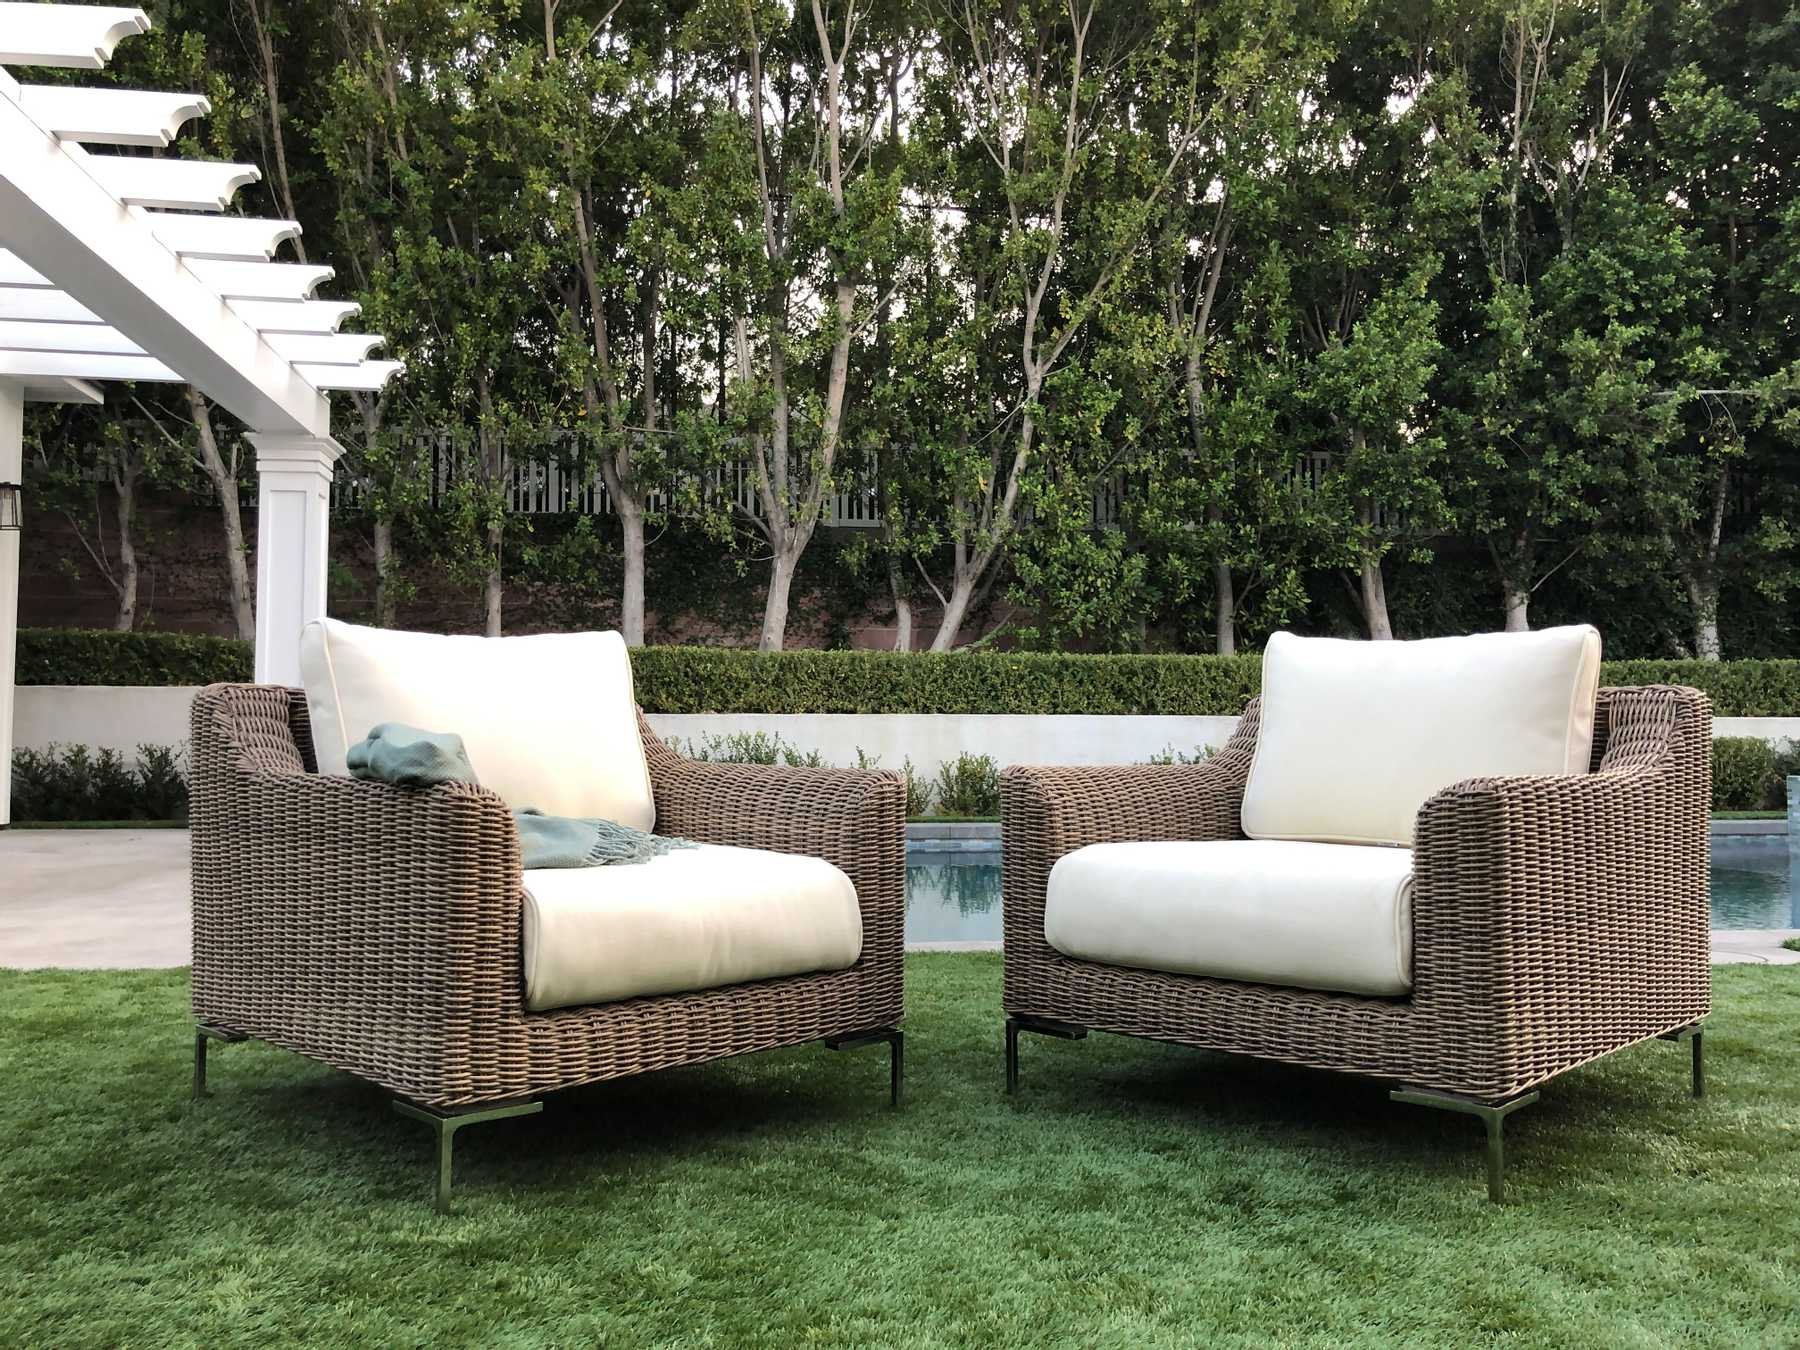 Two patio chairs pool side